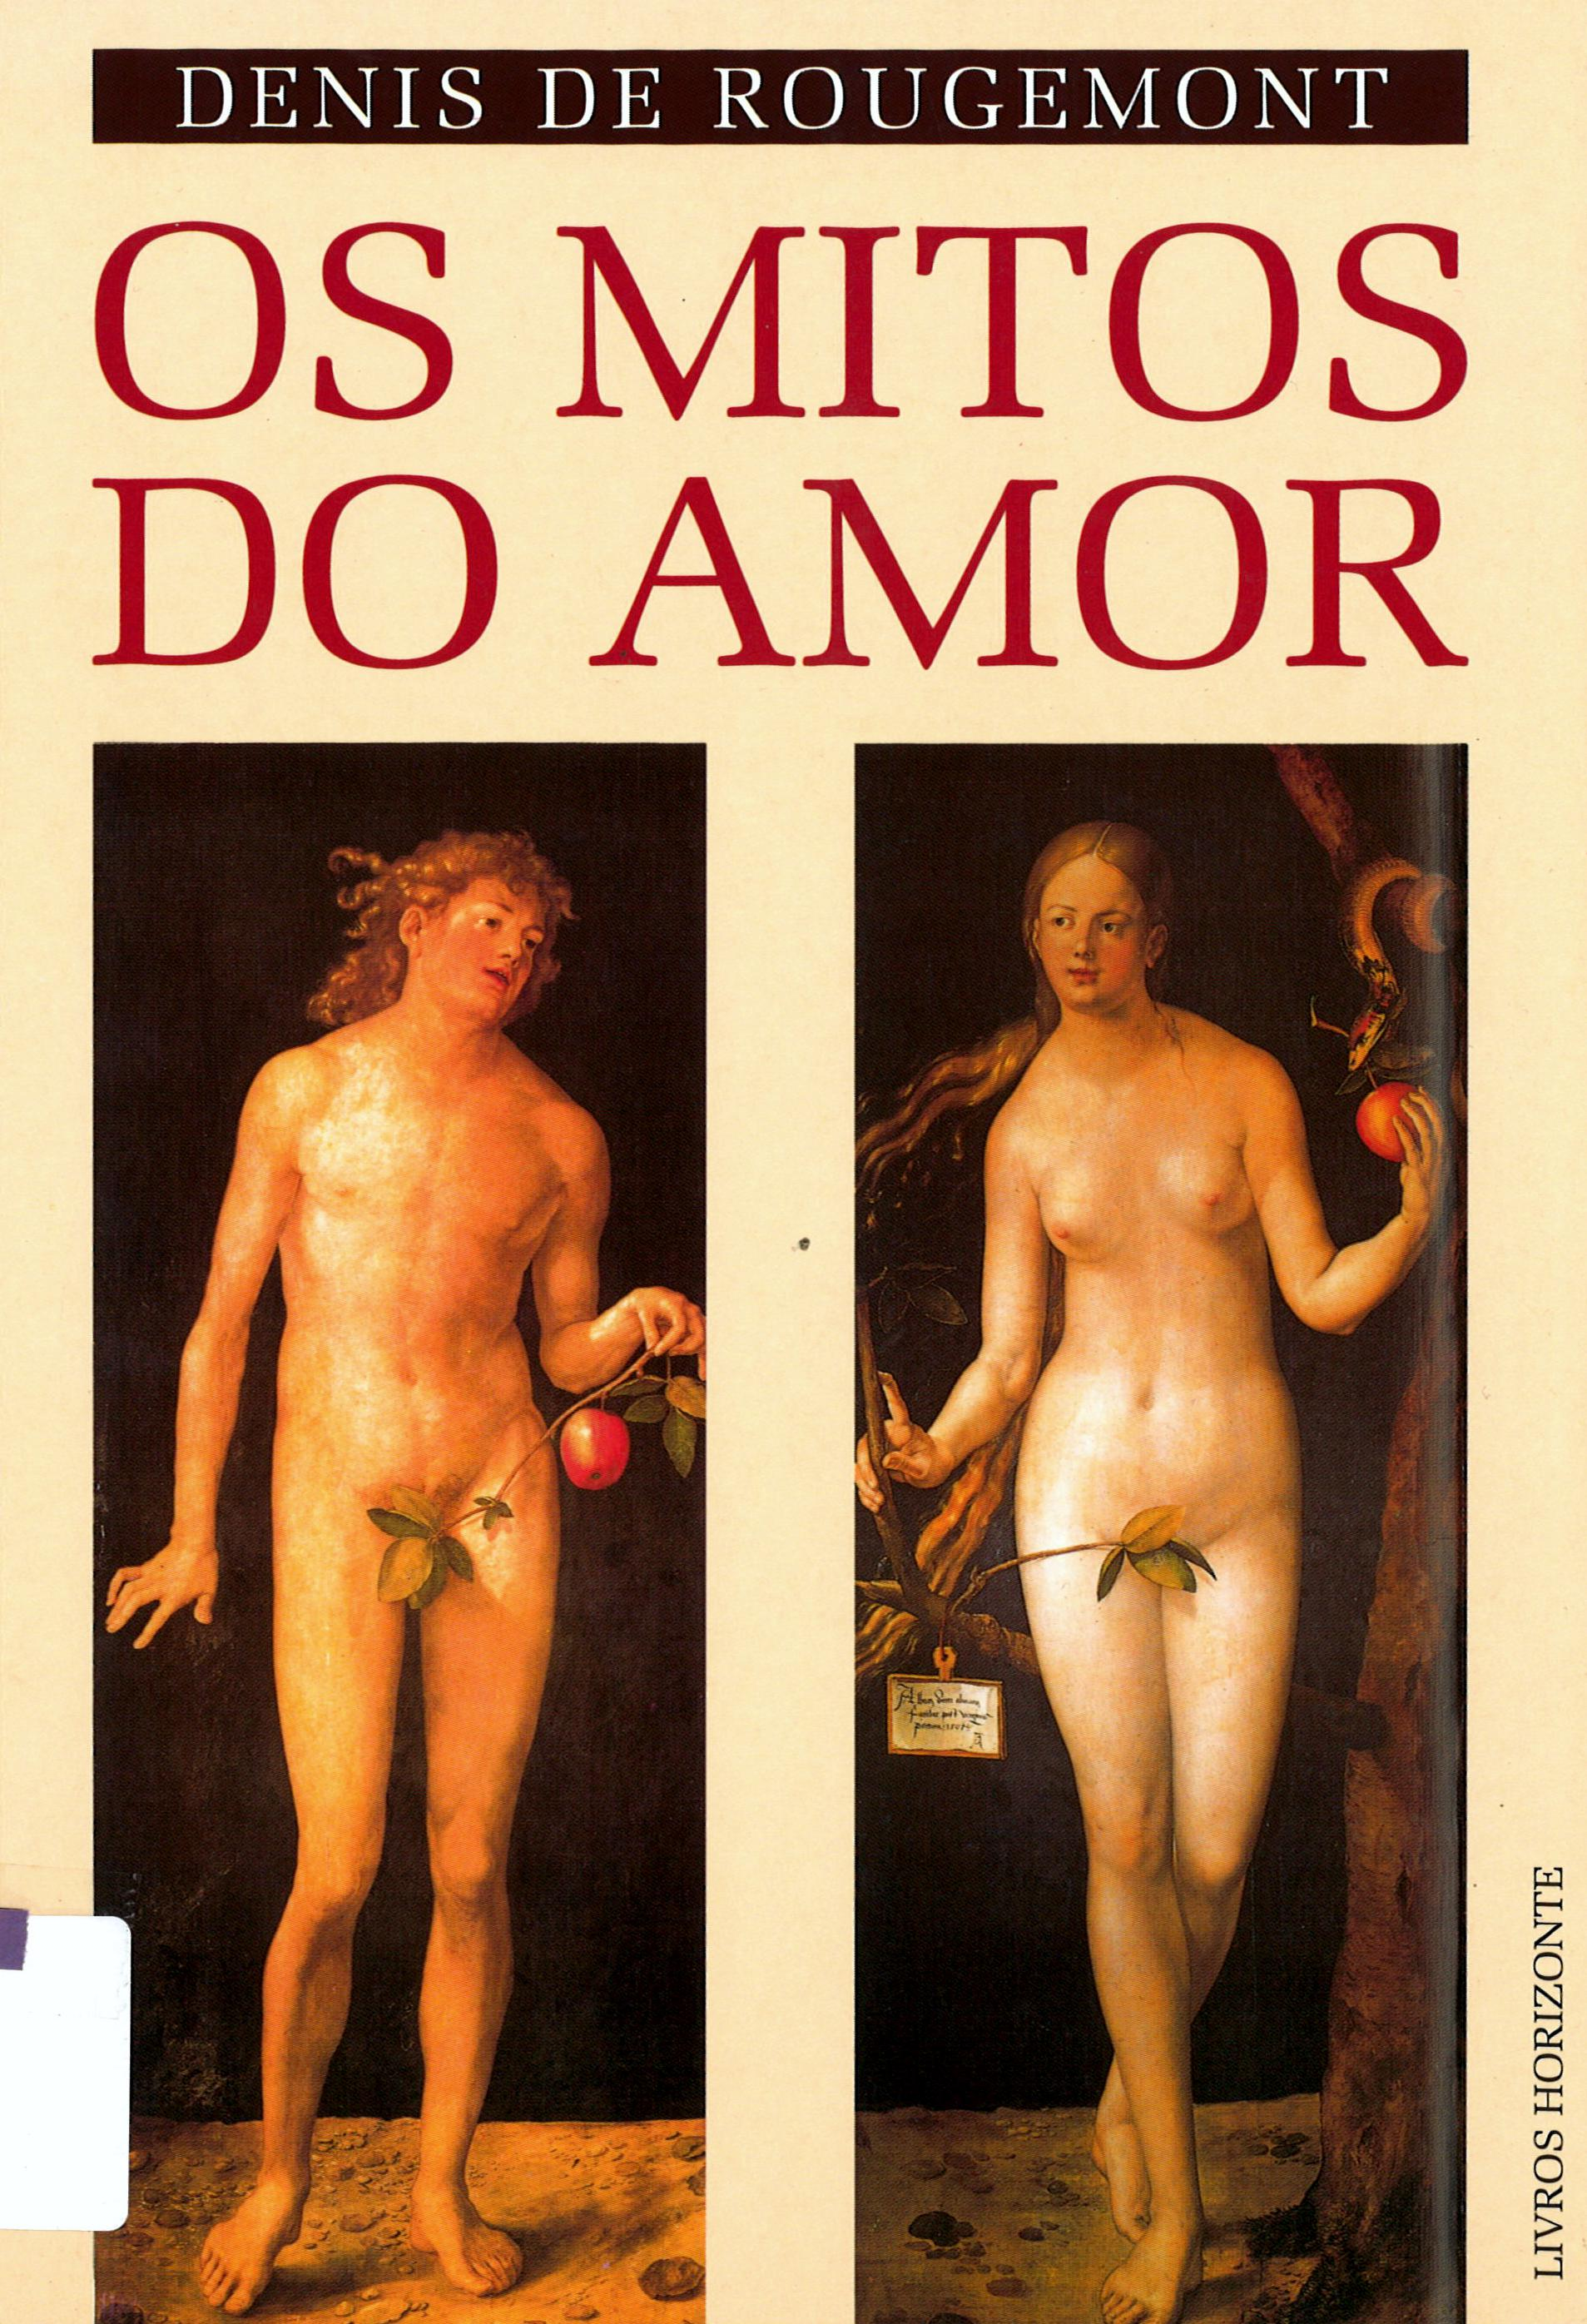 Os mitos do amor